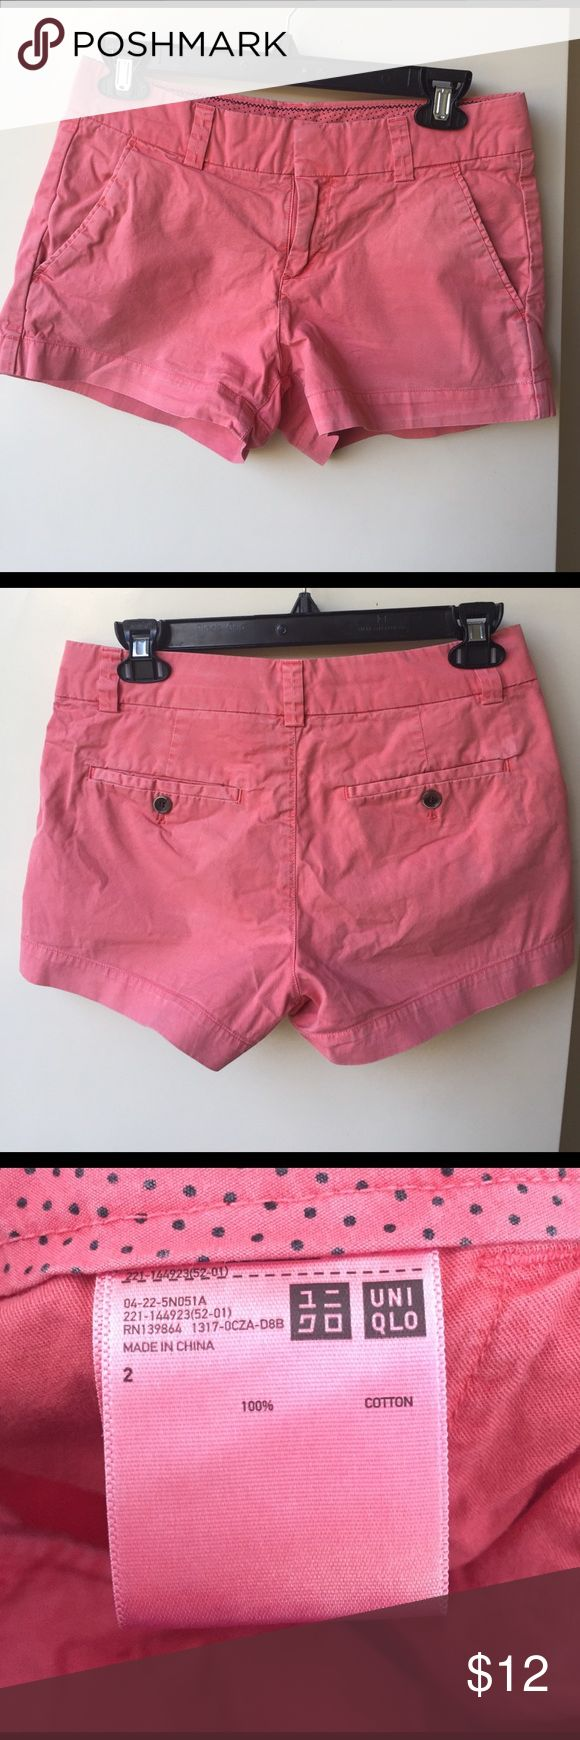 "UNIQLO salmon pink cotton shorts size 2 Cute salmon pink shorts from UNIQLO. 100% cotton. Waist lying flat is about 14.5"". Length is about 10"" from the top. Perfect for spring or summer weather! Uniqlo Shorts"